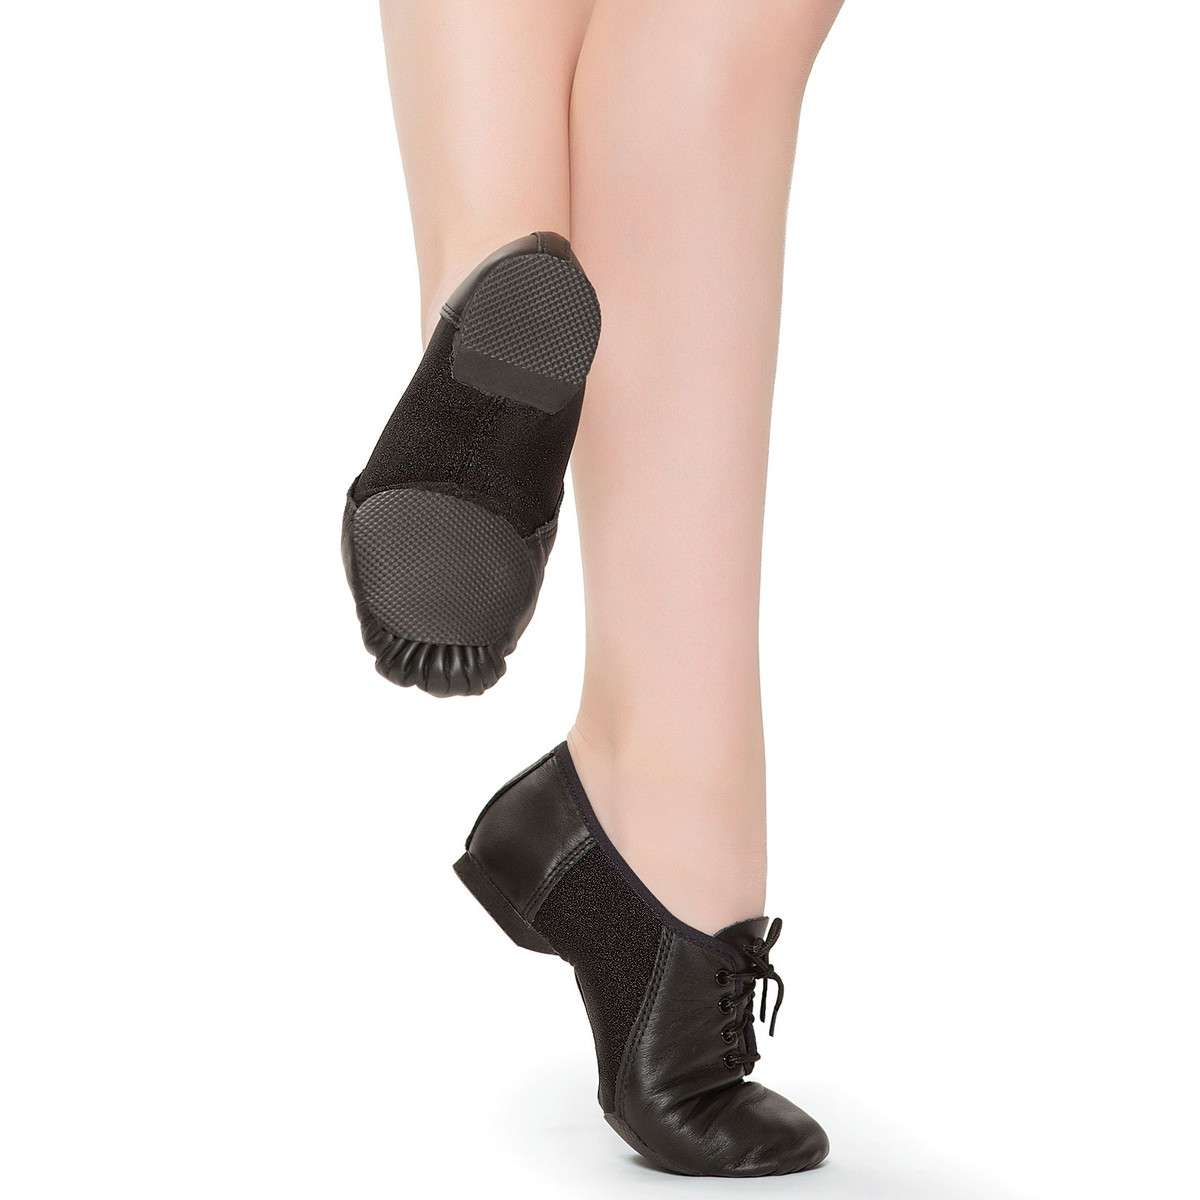 STRETCH JAZZ SHOE - 451 SERIES